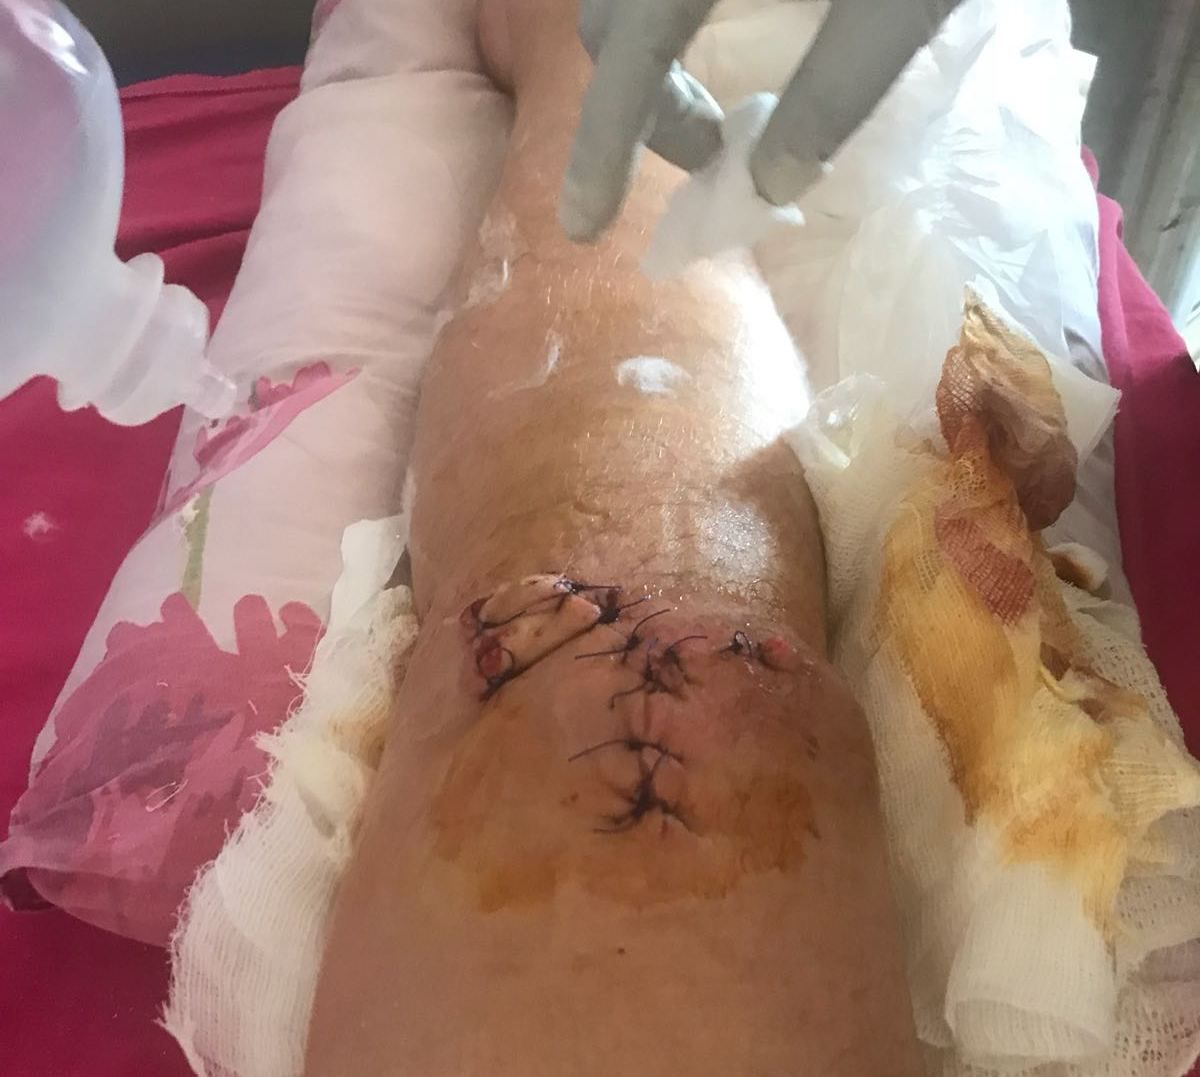 His injured knee after the accident